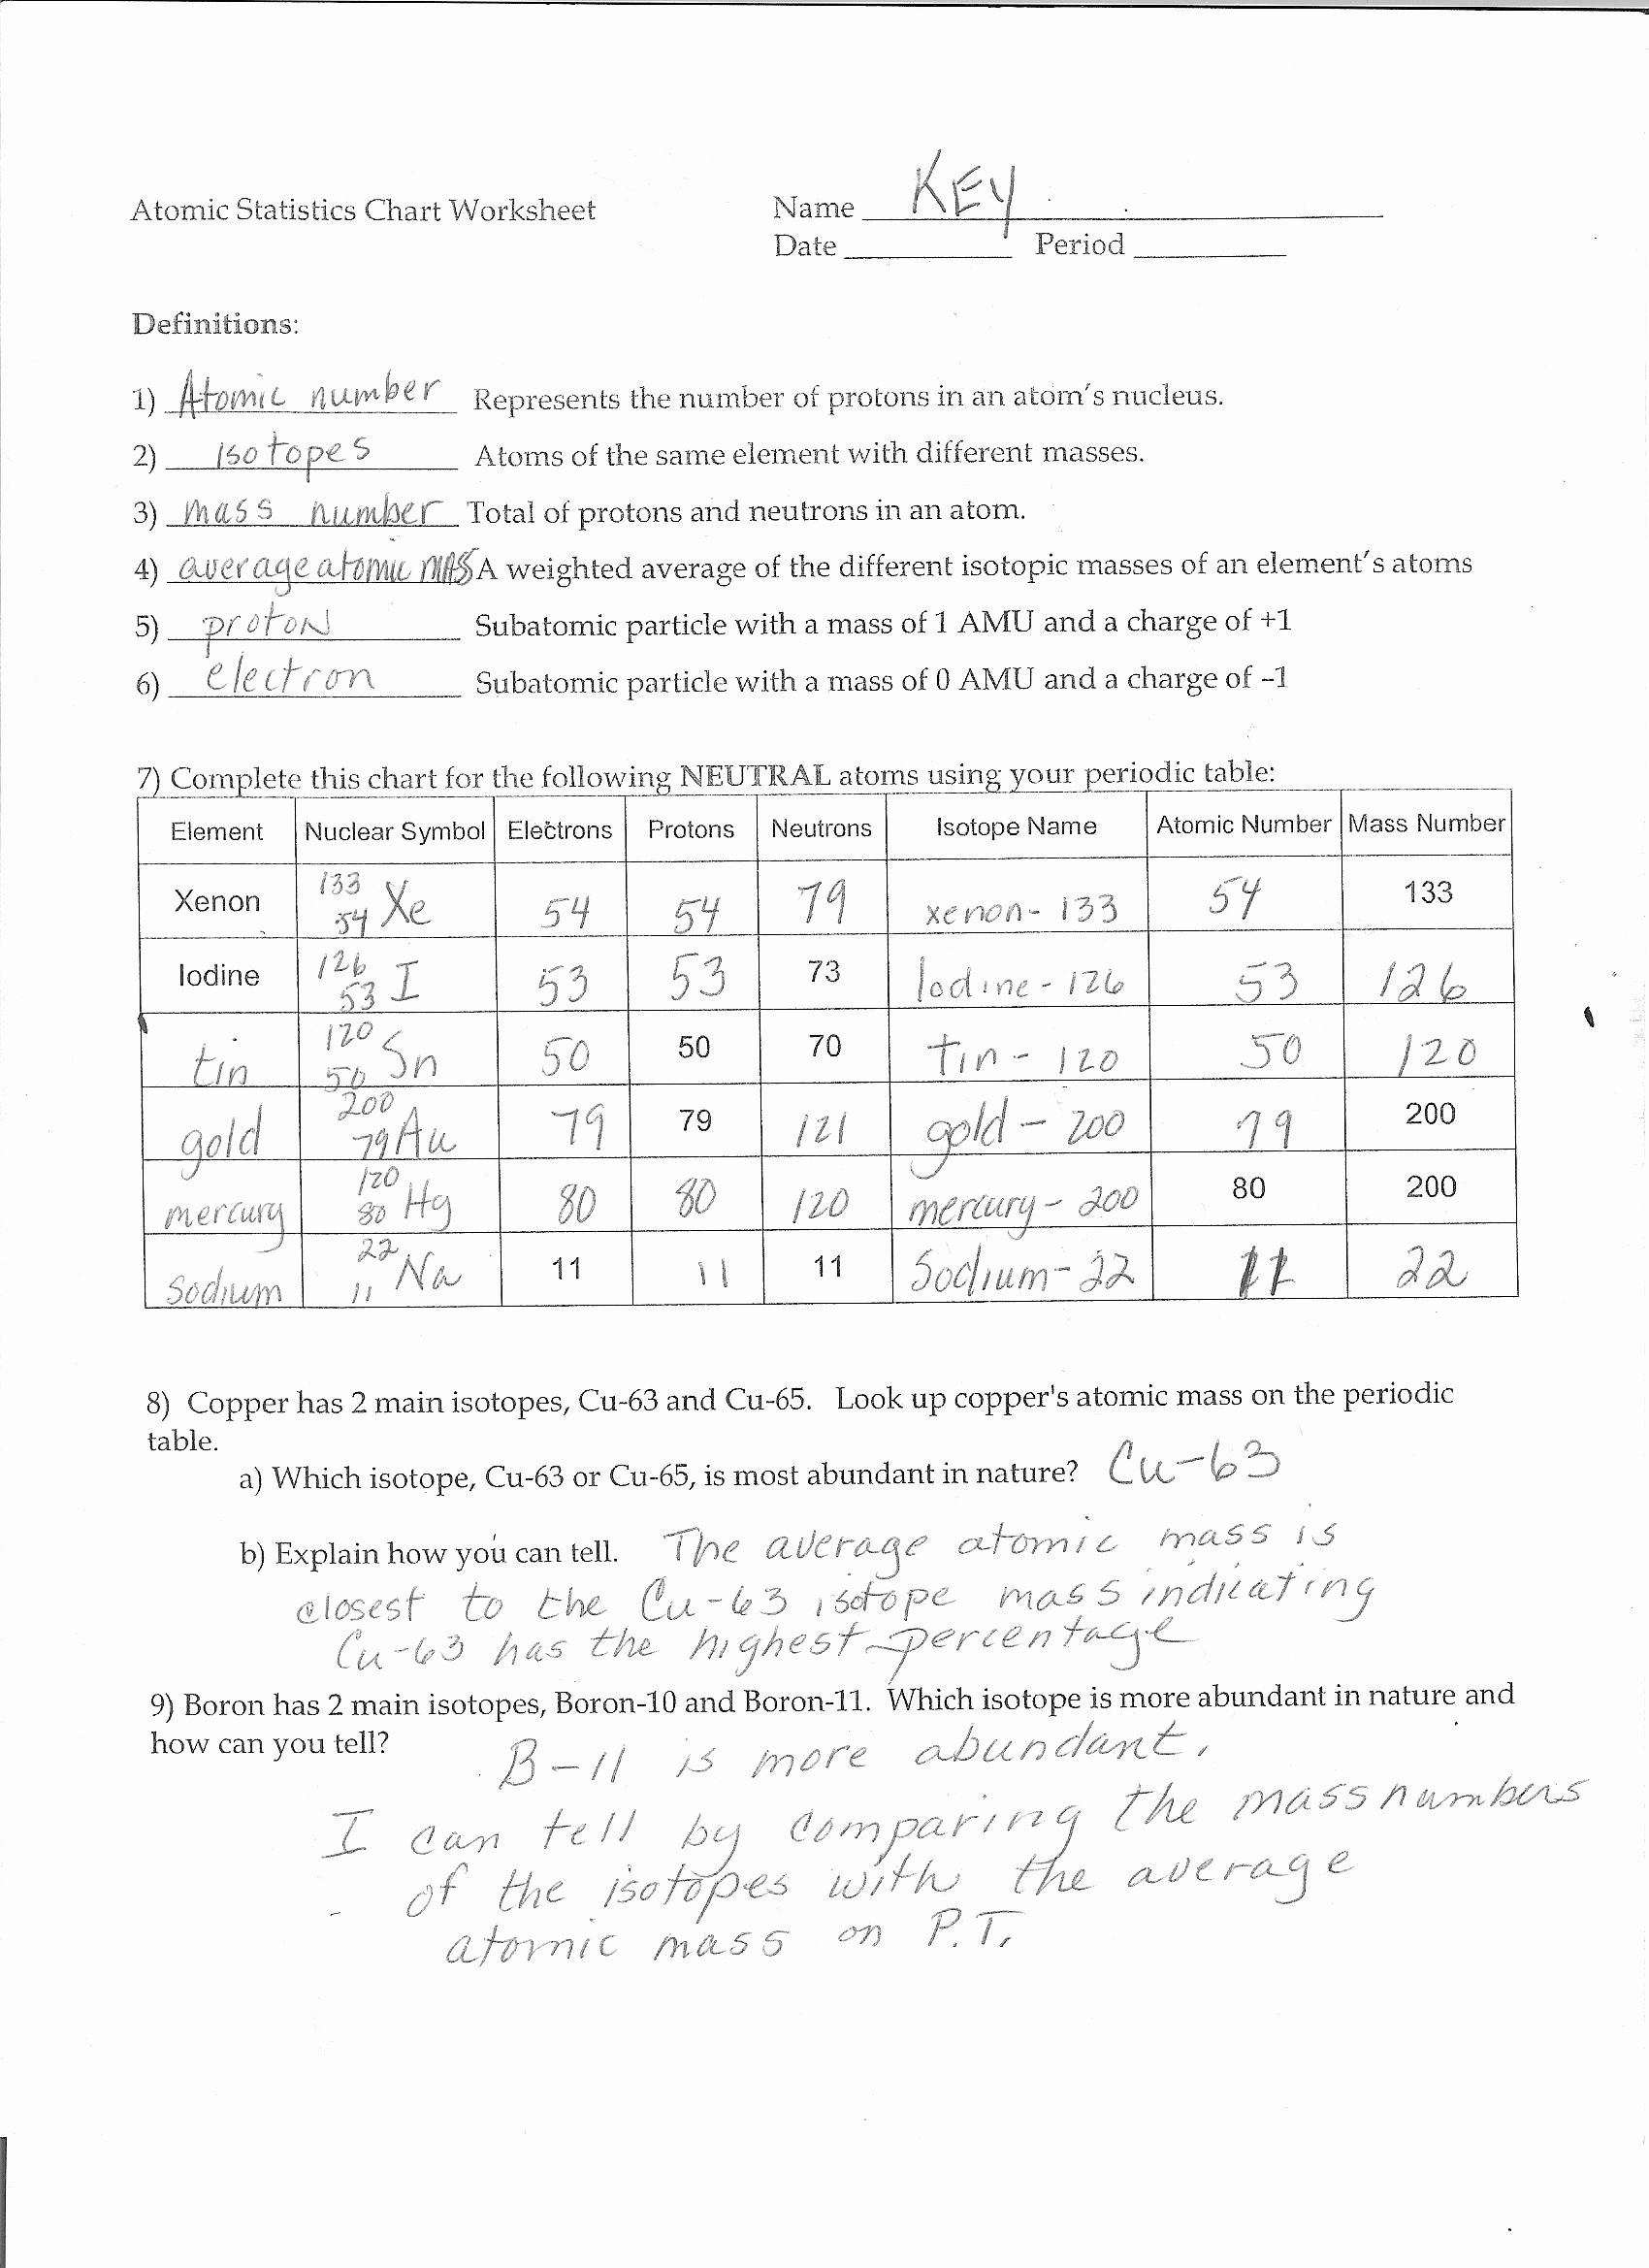 Atomic Structure Worksheet Answers Fresh Atomic Structure